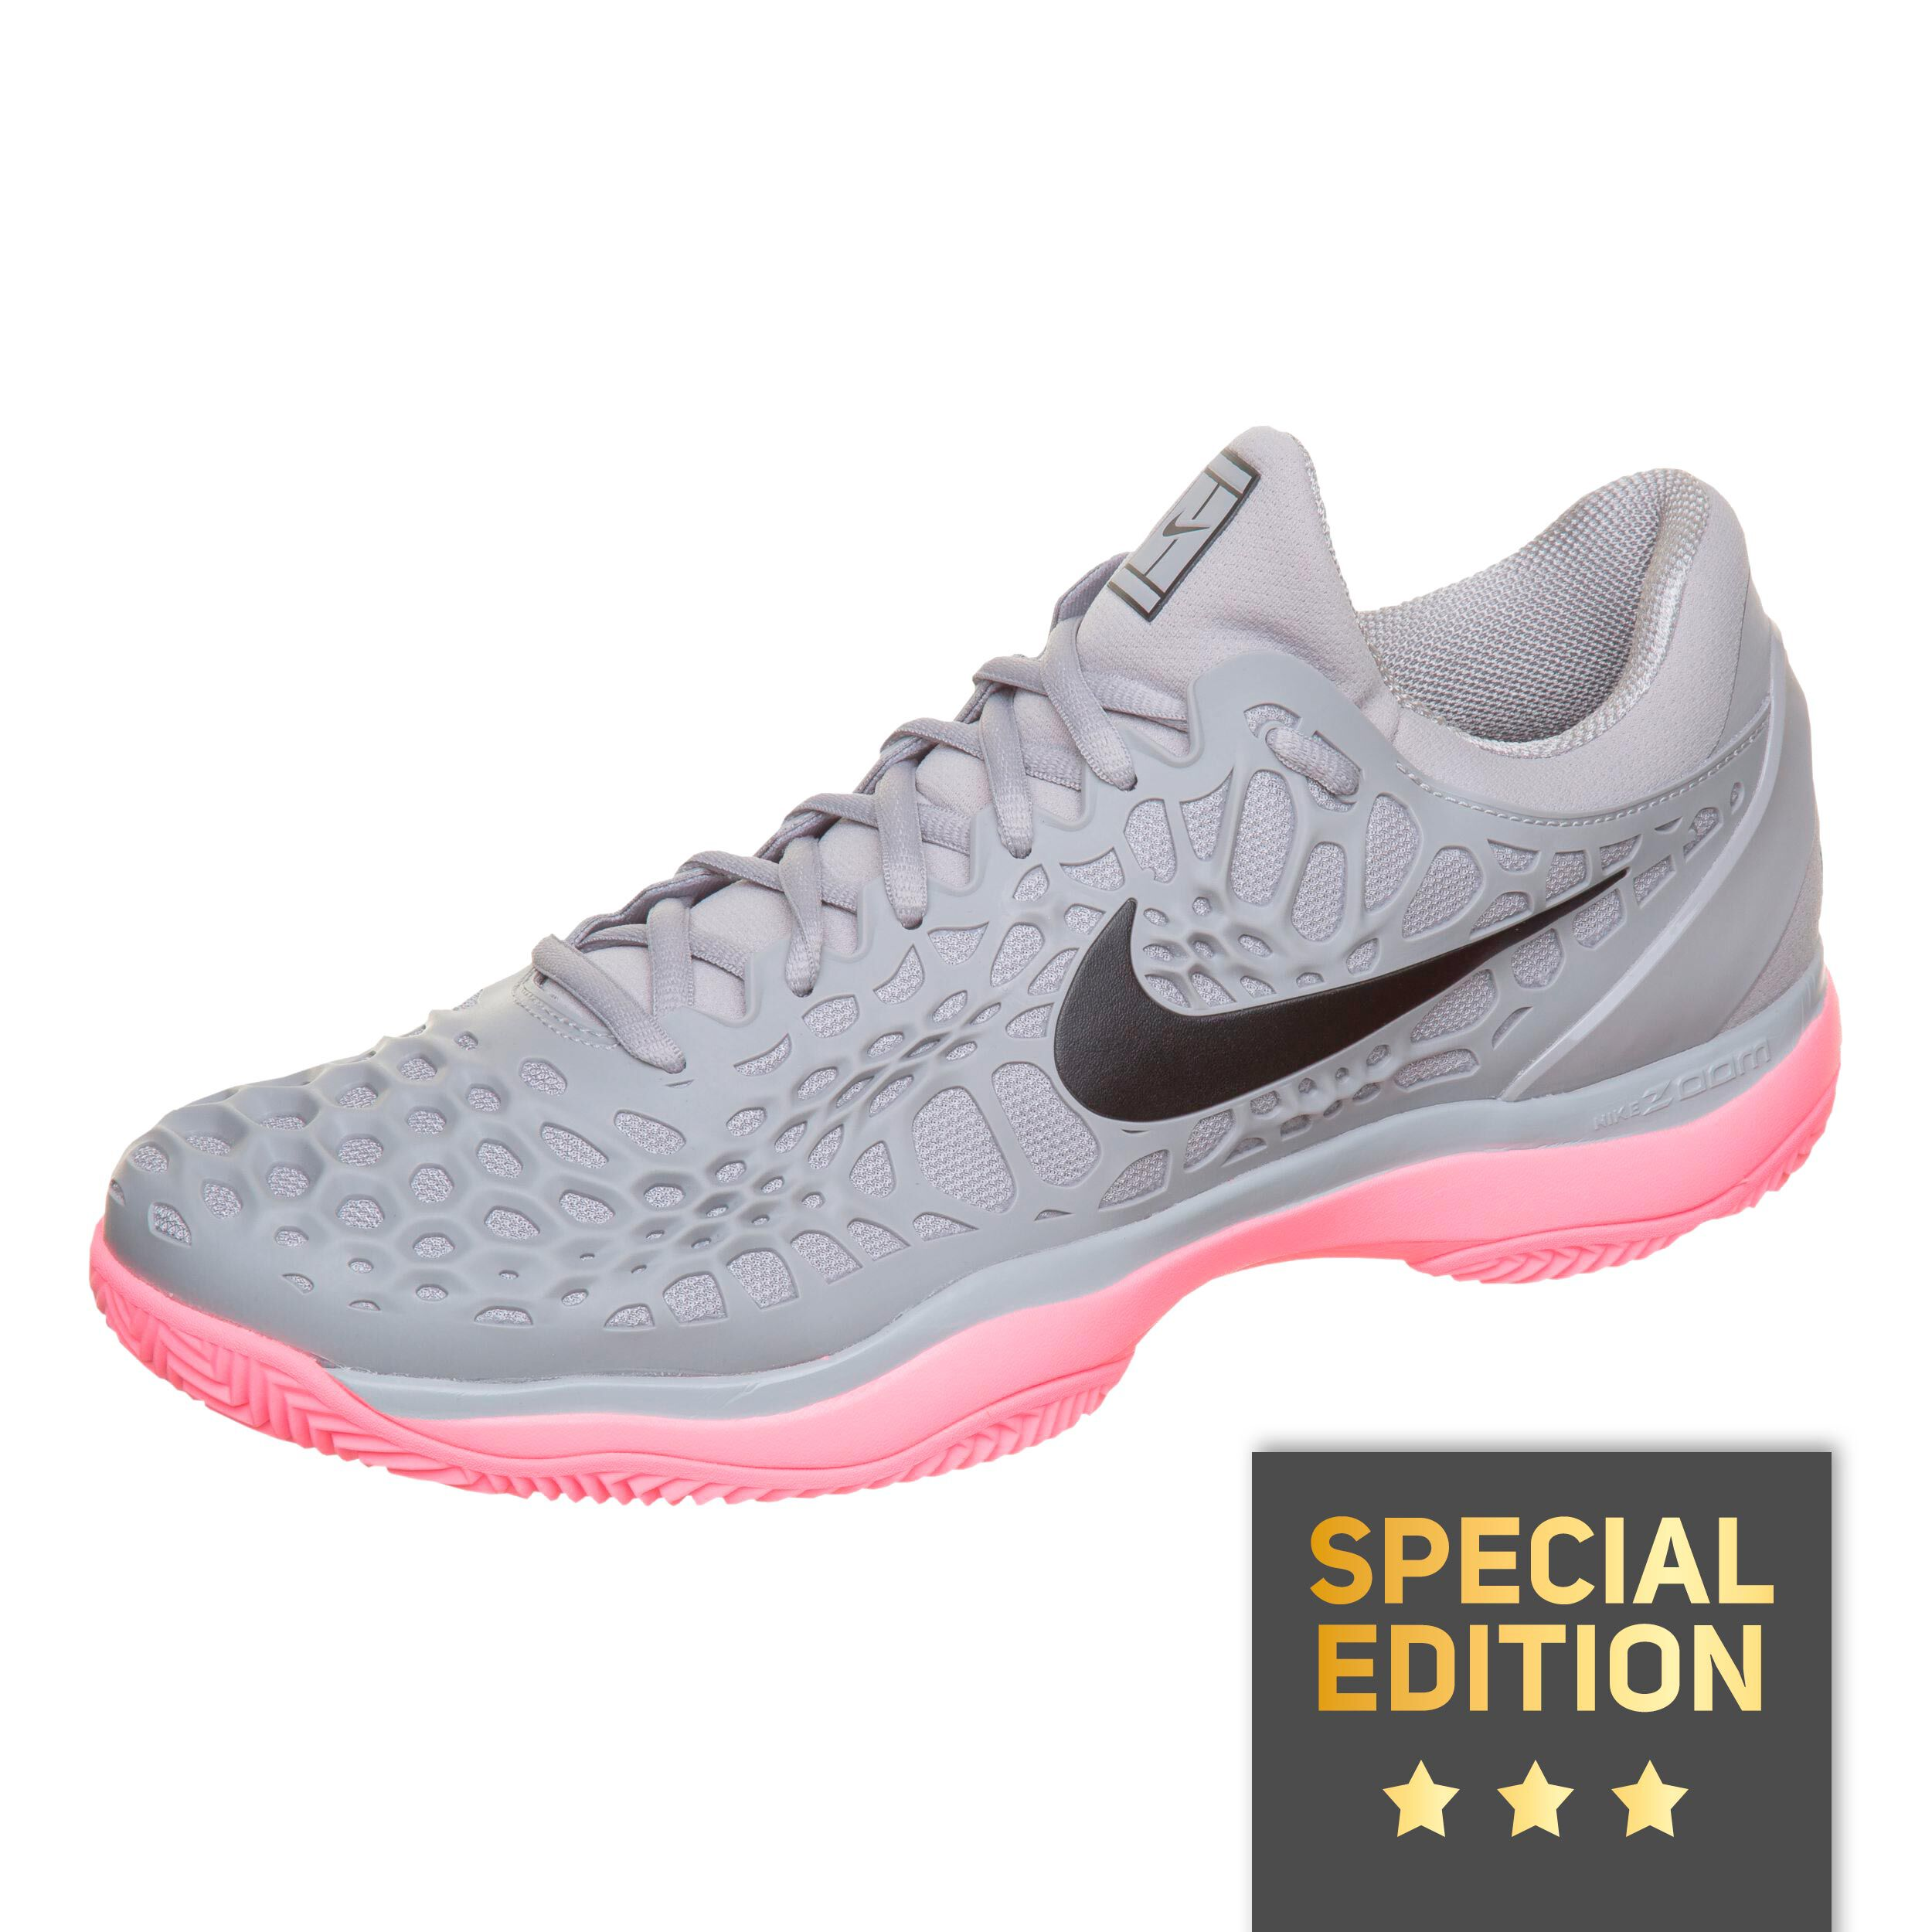 Nike Zoom Cage 3 Clay Chaussure Terre Battue Edition